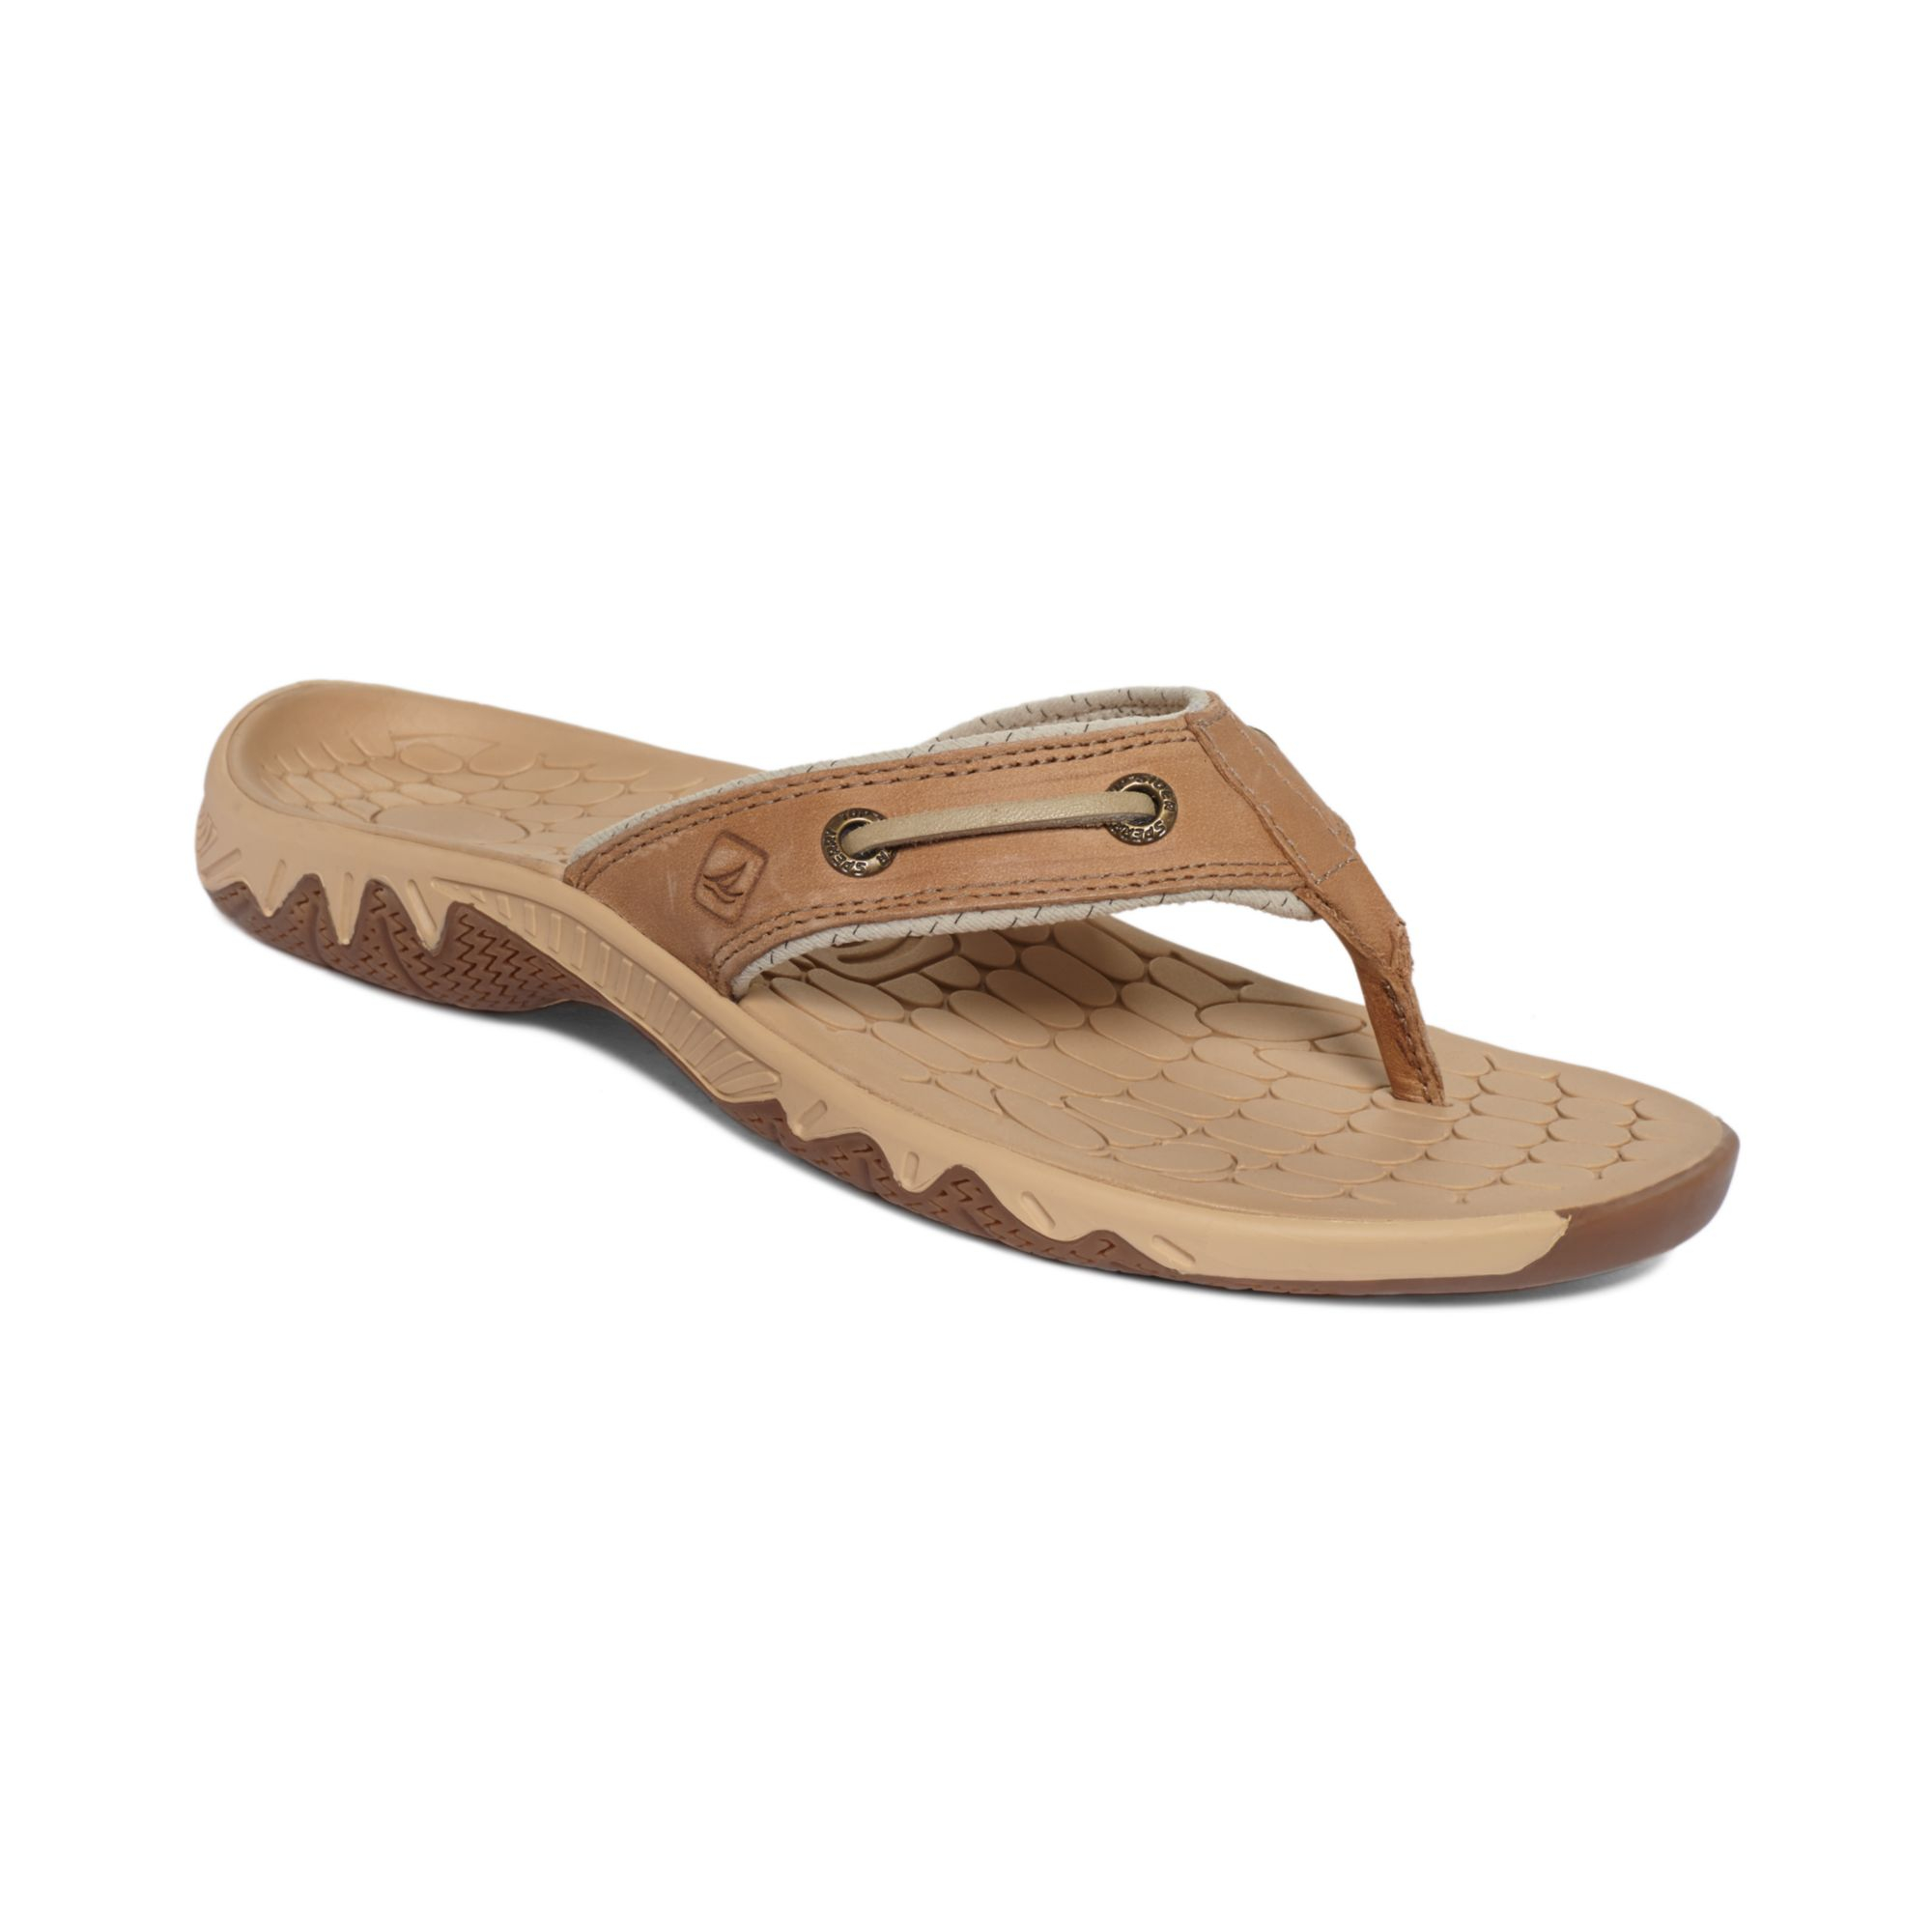 98ddf5a3bf225f Lyst - Sperry Top-Sider Womens Pulse Sonr Thong Sandals in Brown